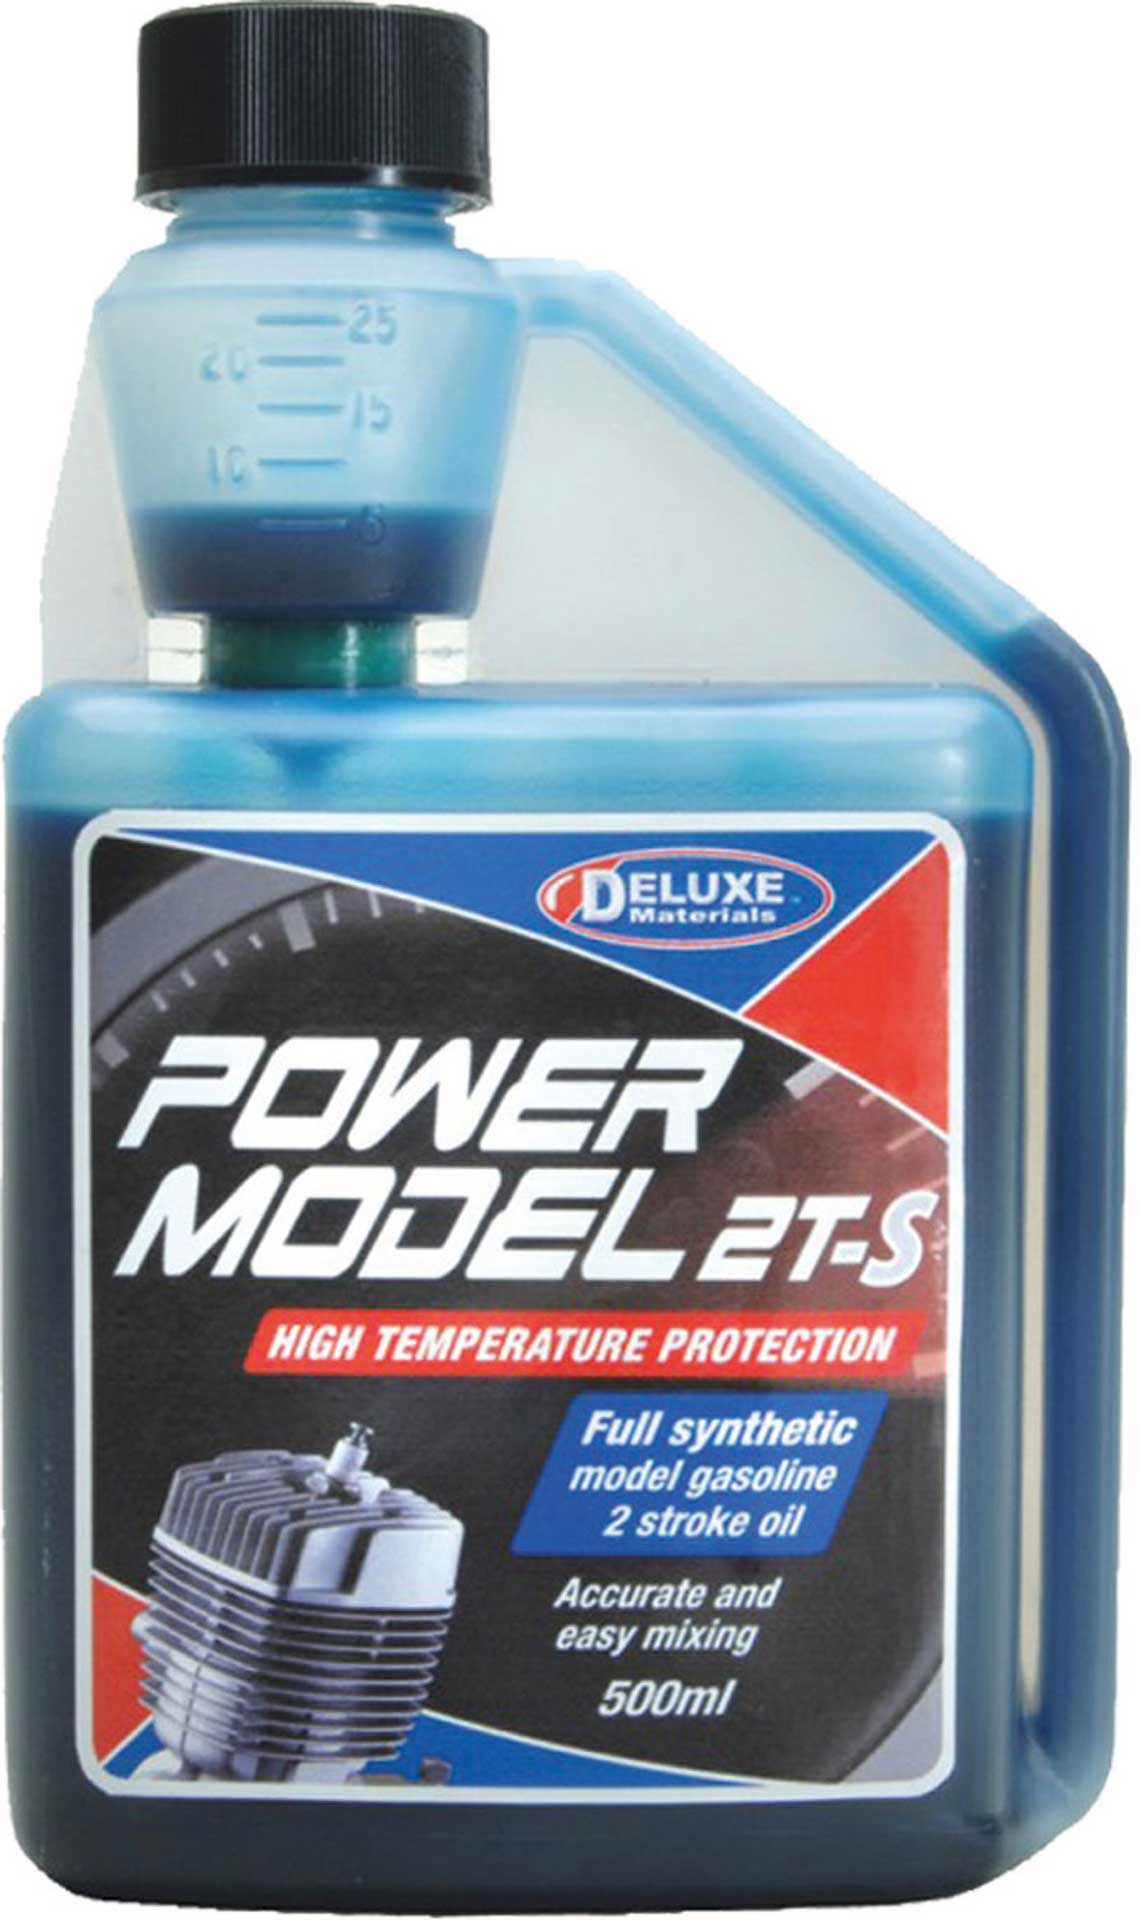 DELUXE POWER MODEL 2T-S SYNTHETIC OIL FOR 2-STROKE PETROL ENGINES